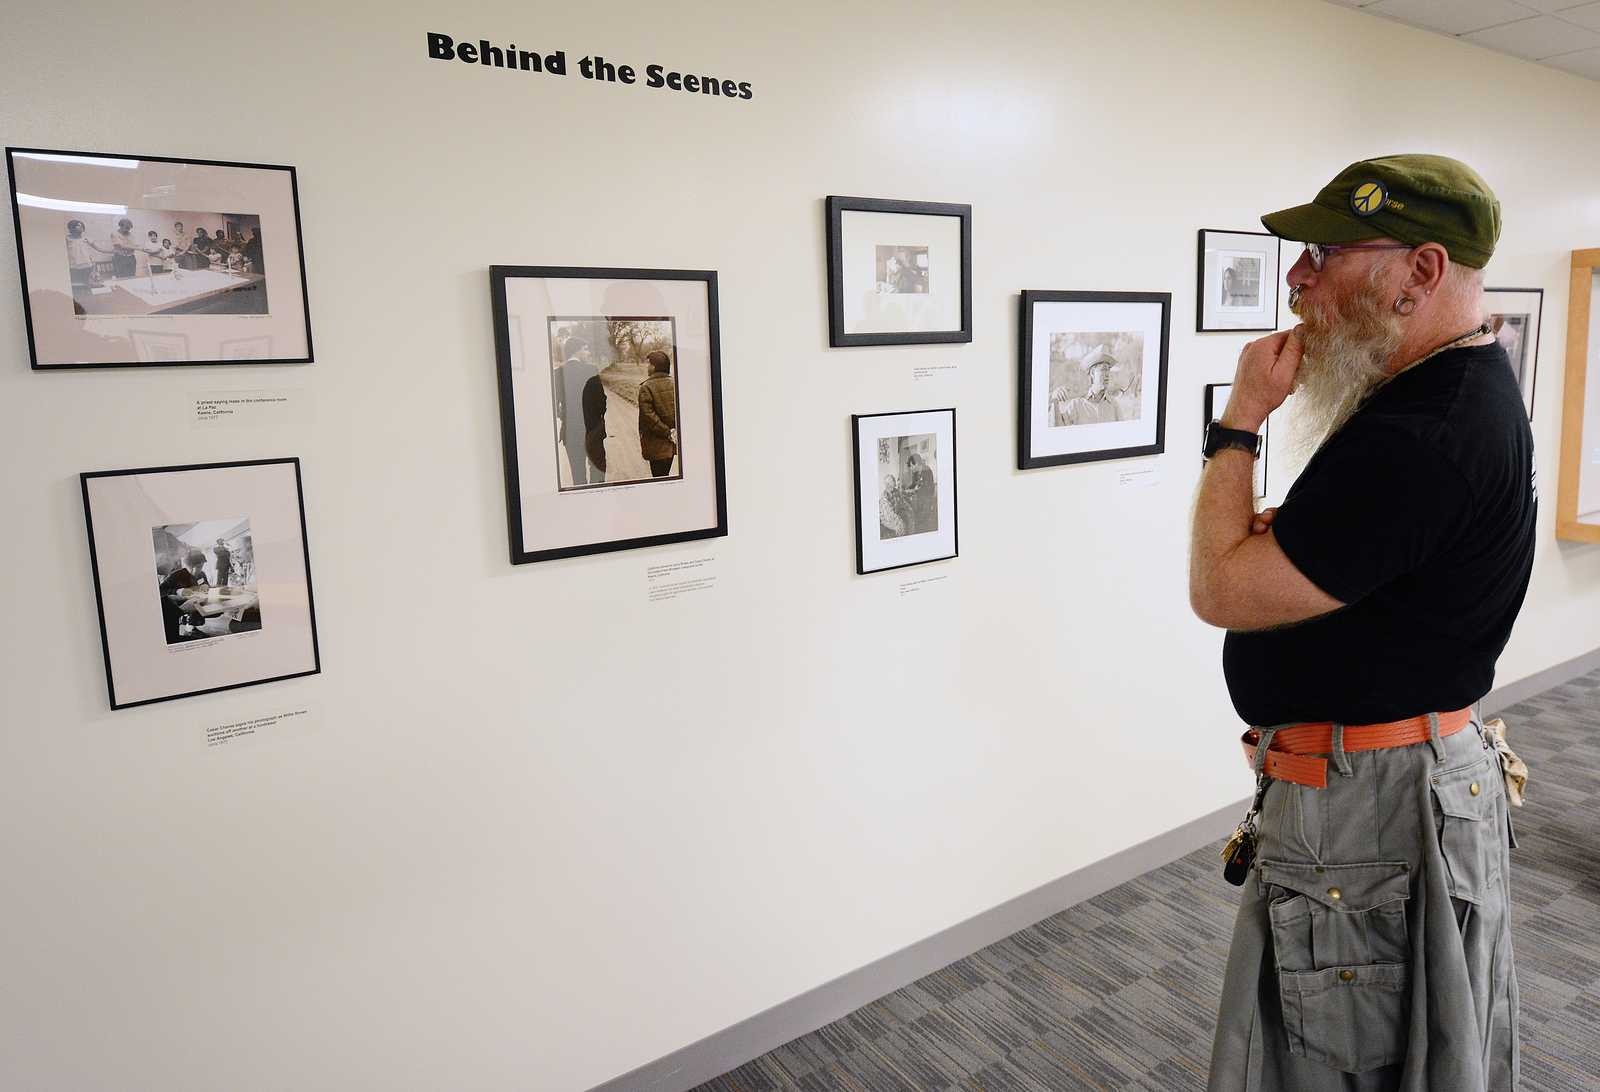 Woody Miller, graduate student, observes photographs in the Marching Through History with Cesar Chavez and the Farm Workers exhibit at J. Paul Leonard Library on Monday, Sept. 16, 2013. Photo By Philip Houston / Xpress